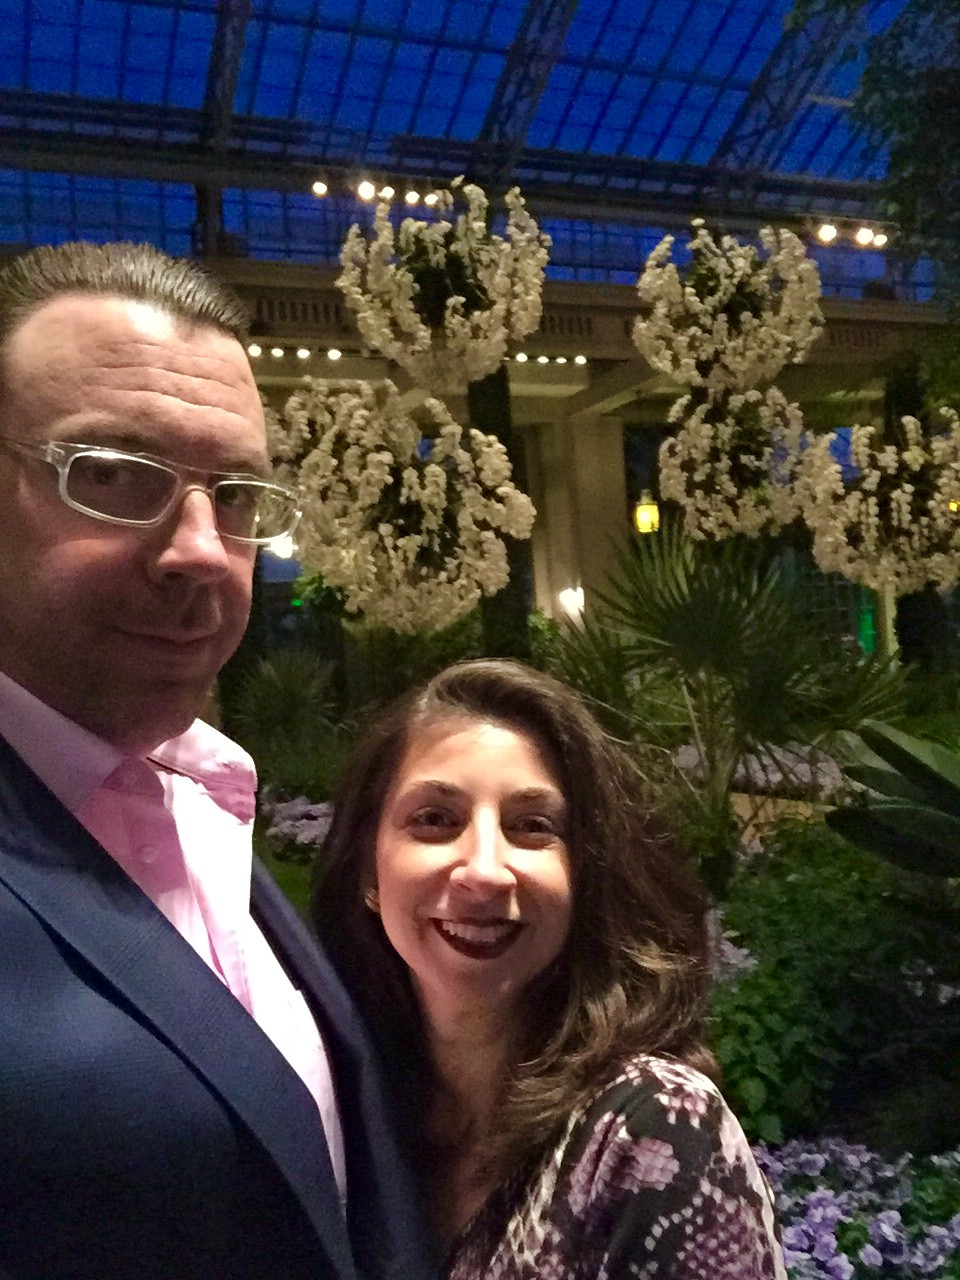 Dan and Melissa Dietrich, Longwood Gardens, Kennet Square, PA